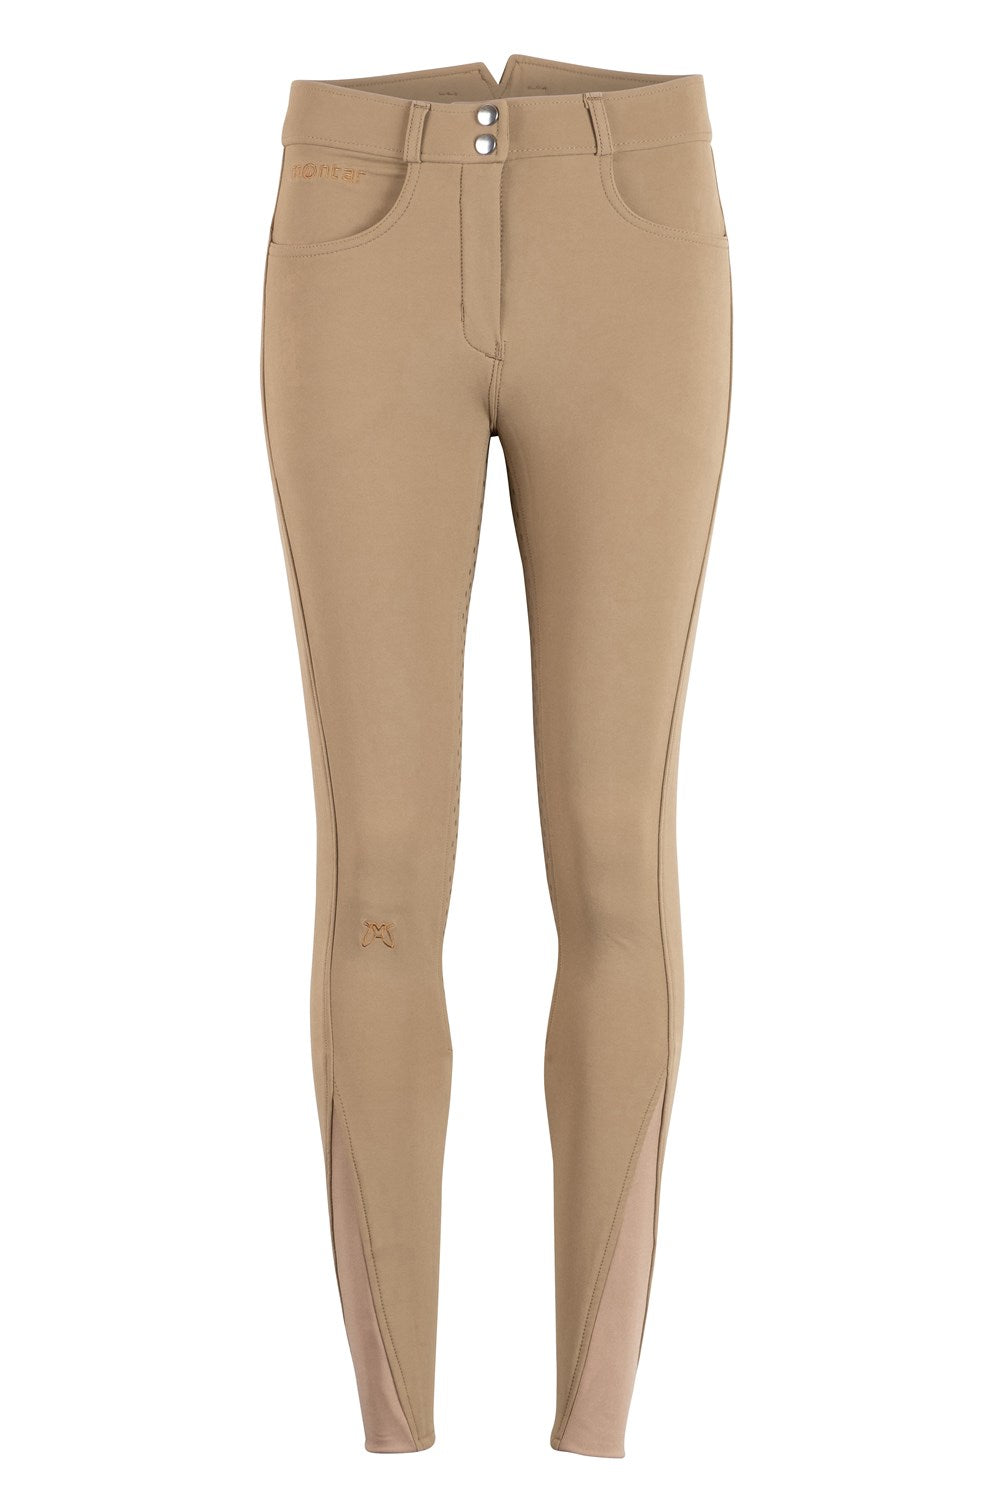 Montar Essential High Waisted Breeches Beige Full Seat